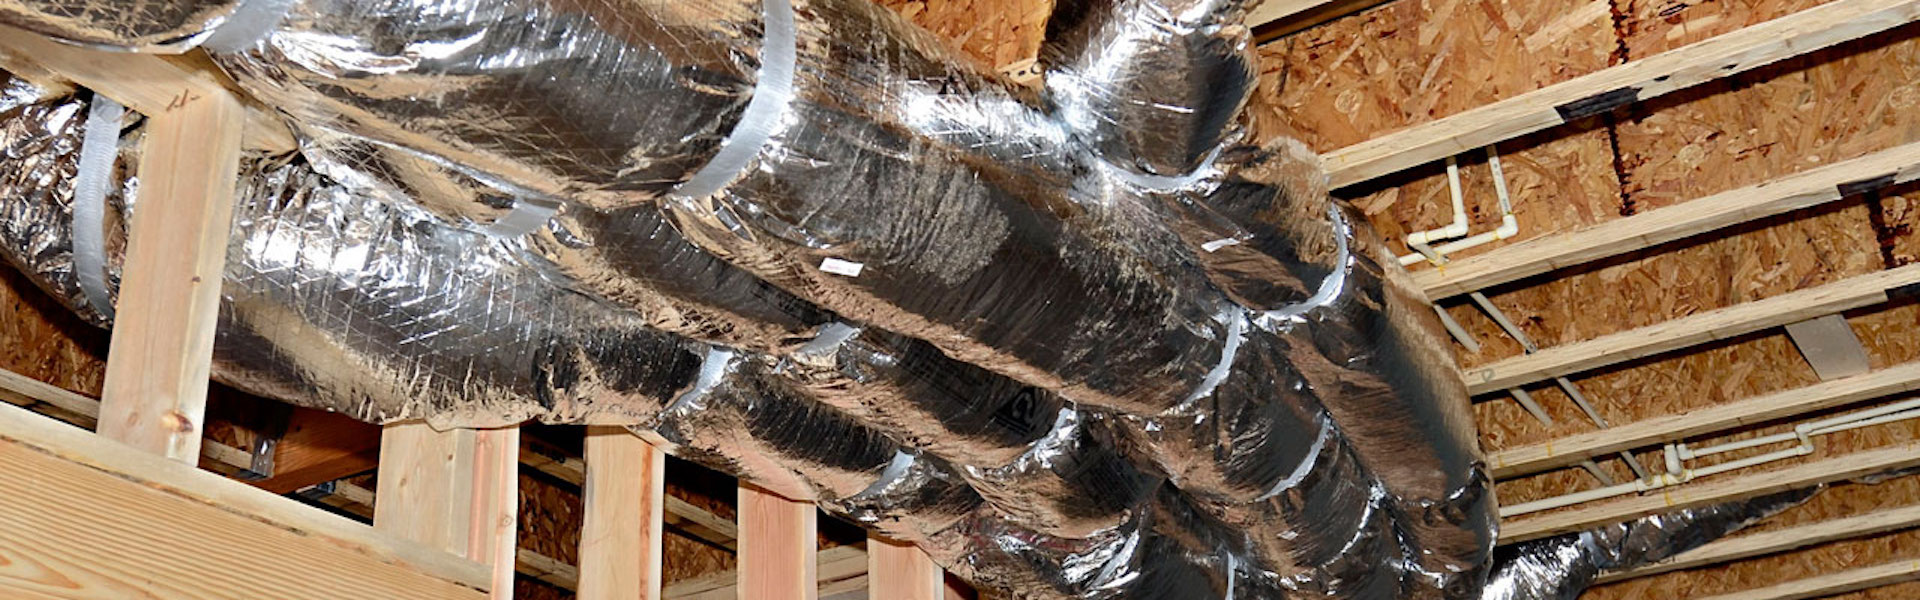 Common Ductwork Problems